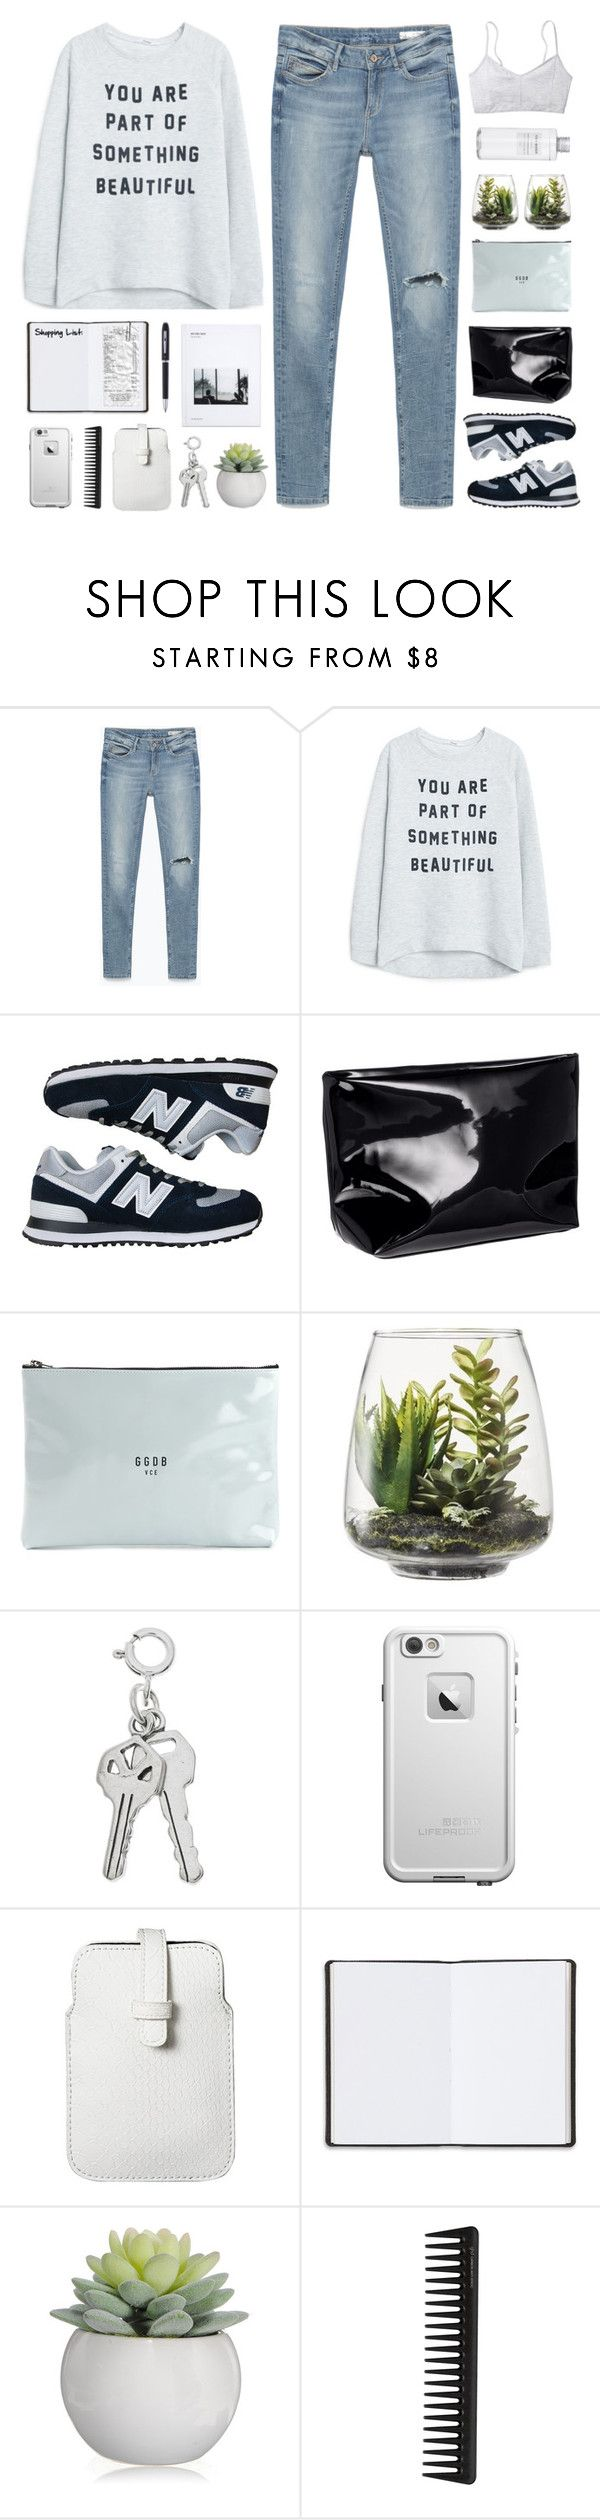 """""""//What to Wear: Black Friday Shopping//"""" by lion-smile ❤ liked on Polyvore featuring Zara, MANGO, New Balance, H&M, Golden Goose, Threshold, Muji, LifeProof, Mossimo and Harrods"""